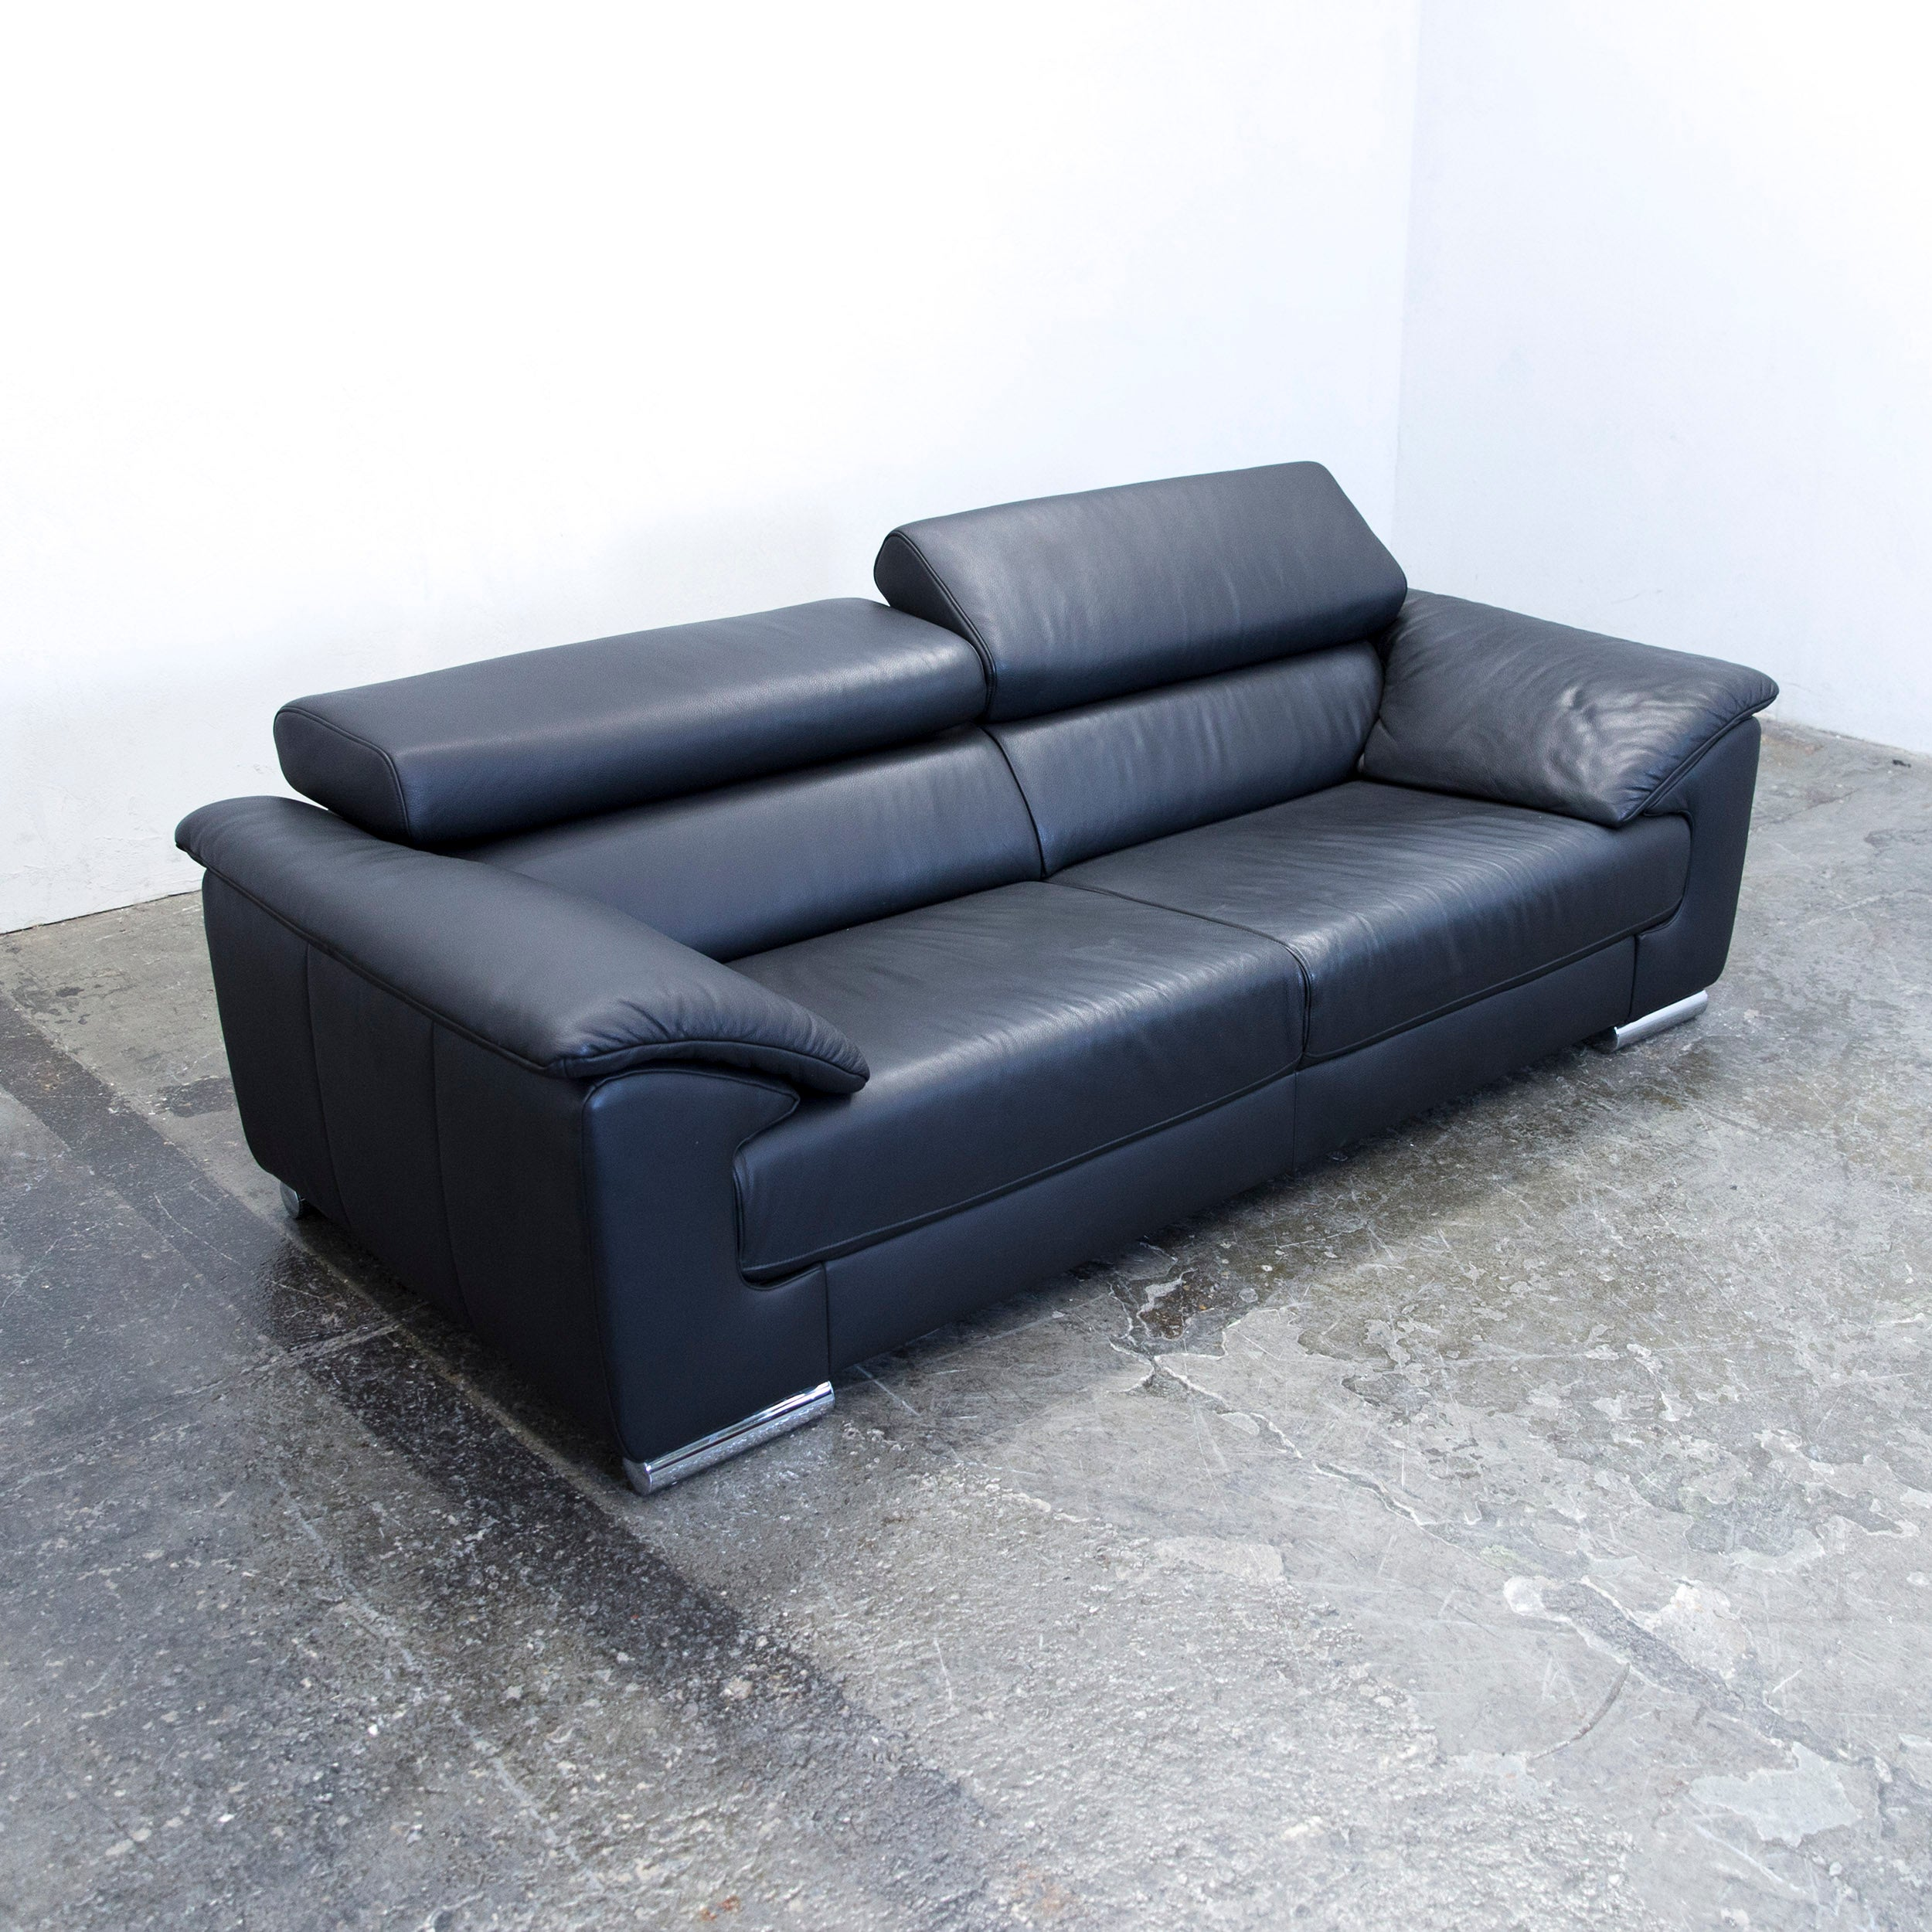 Inspirierend Schillig Sofas Galerie Von Ewald Designer Sofa Leather Black Two-seat Function